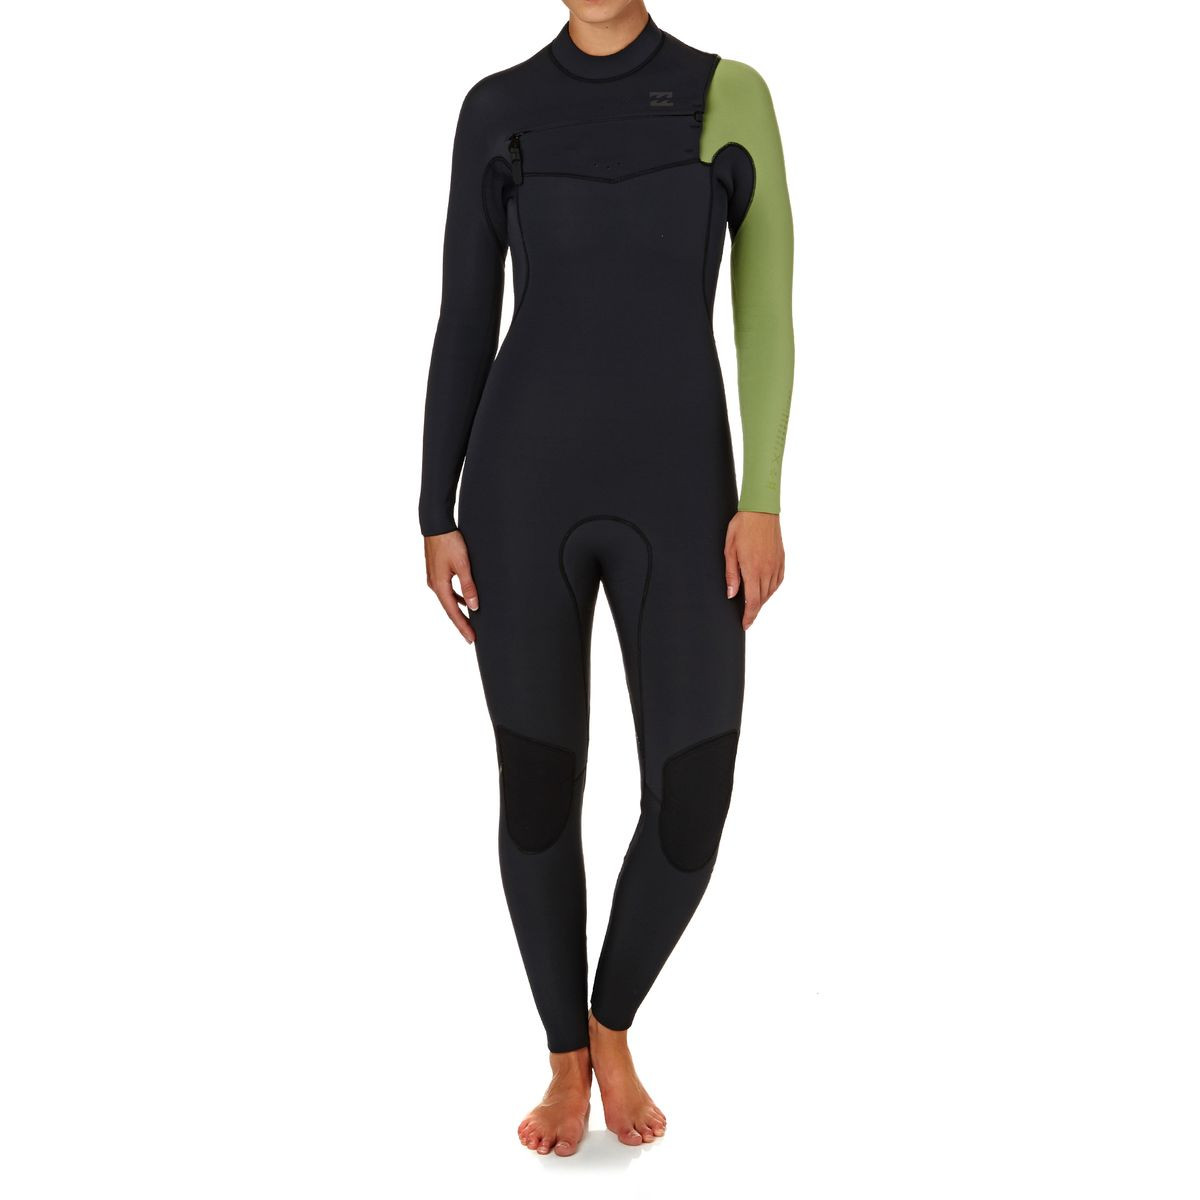 Billabong Womens Furnace Comp 5/4mm 2018 Chest Zip Wetsuit - Black Sands